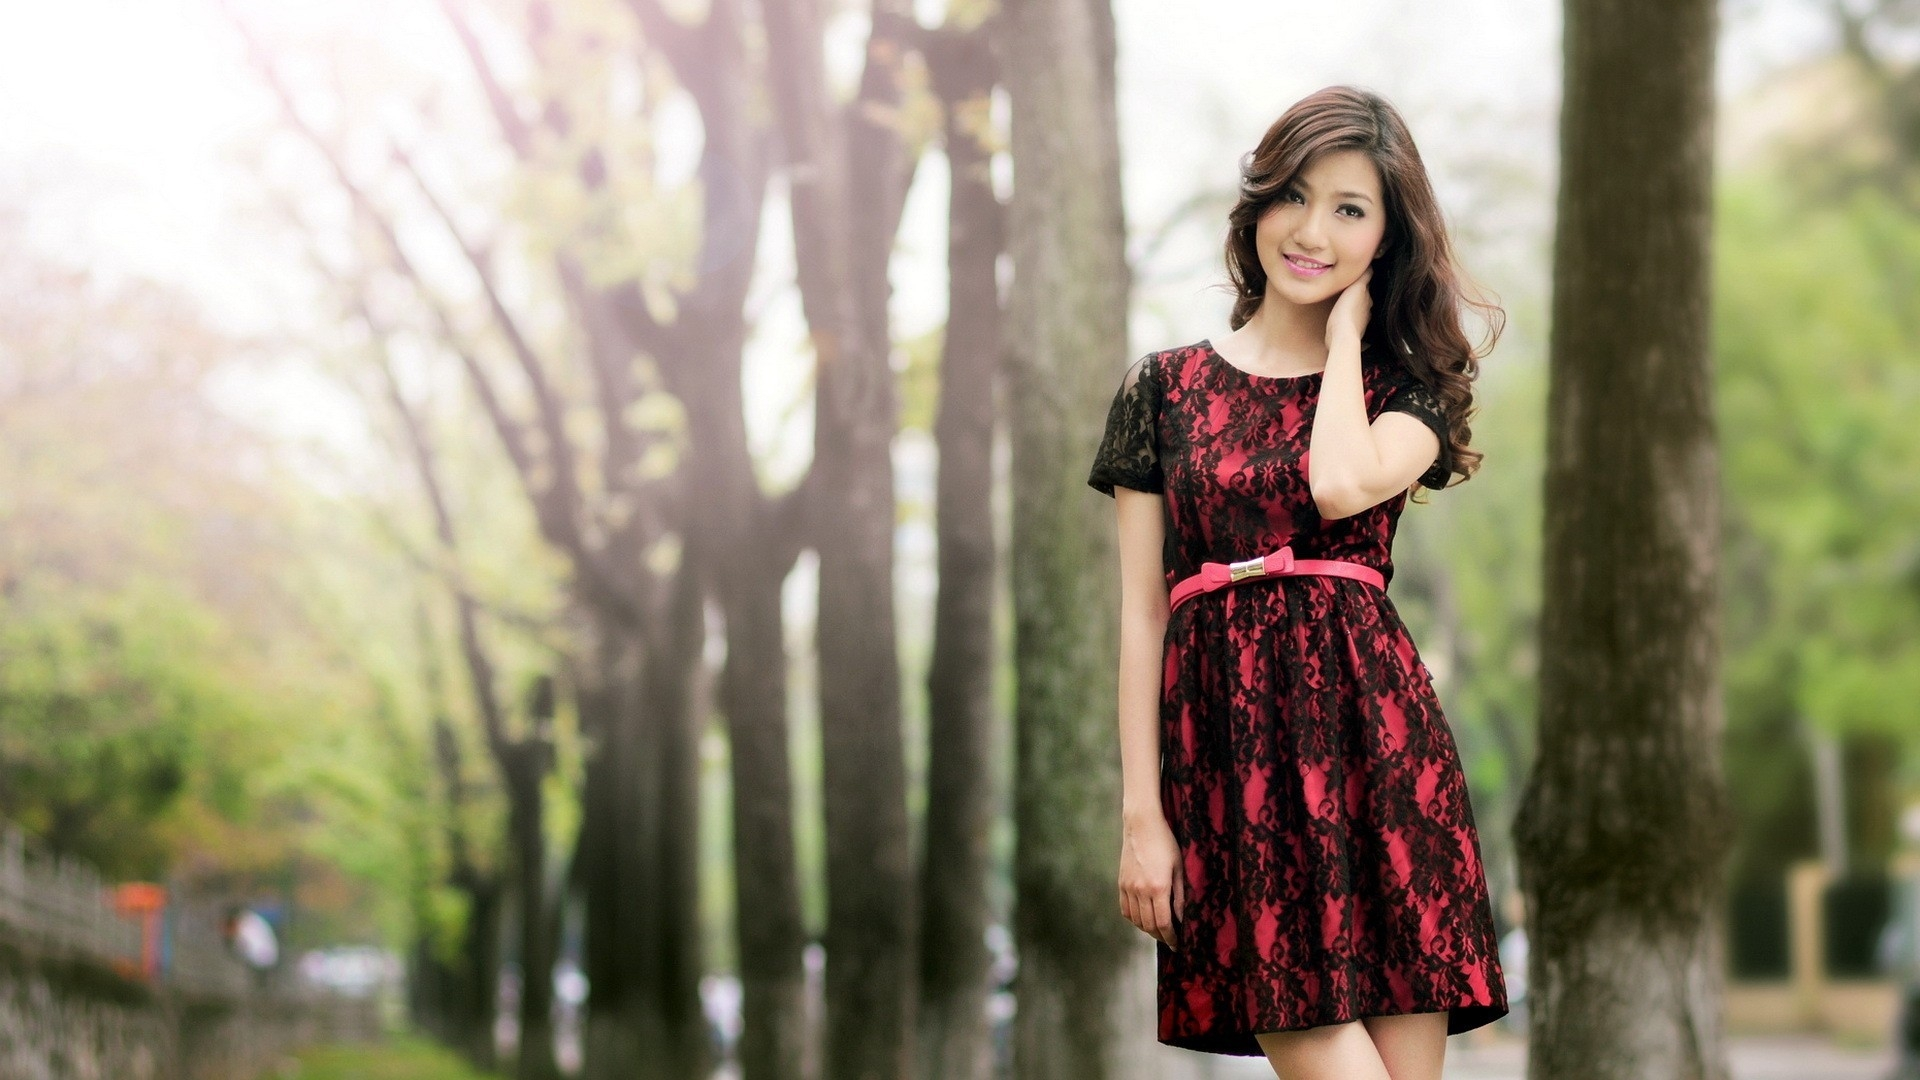 Full pic girl Free Download Wallpaper 1920x1080 Dress Asian Girl Smile Love Full Hd 1080p Hd 1920x1080 For Your Desktop Mobile Tablet Explore 45 Full Hd Wallpapers 1920x1080 Girls Hd Wallpapers 1920x1080